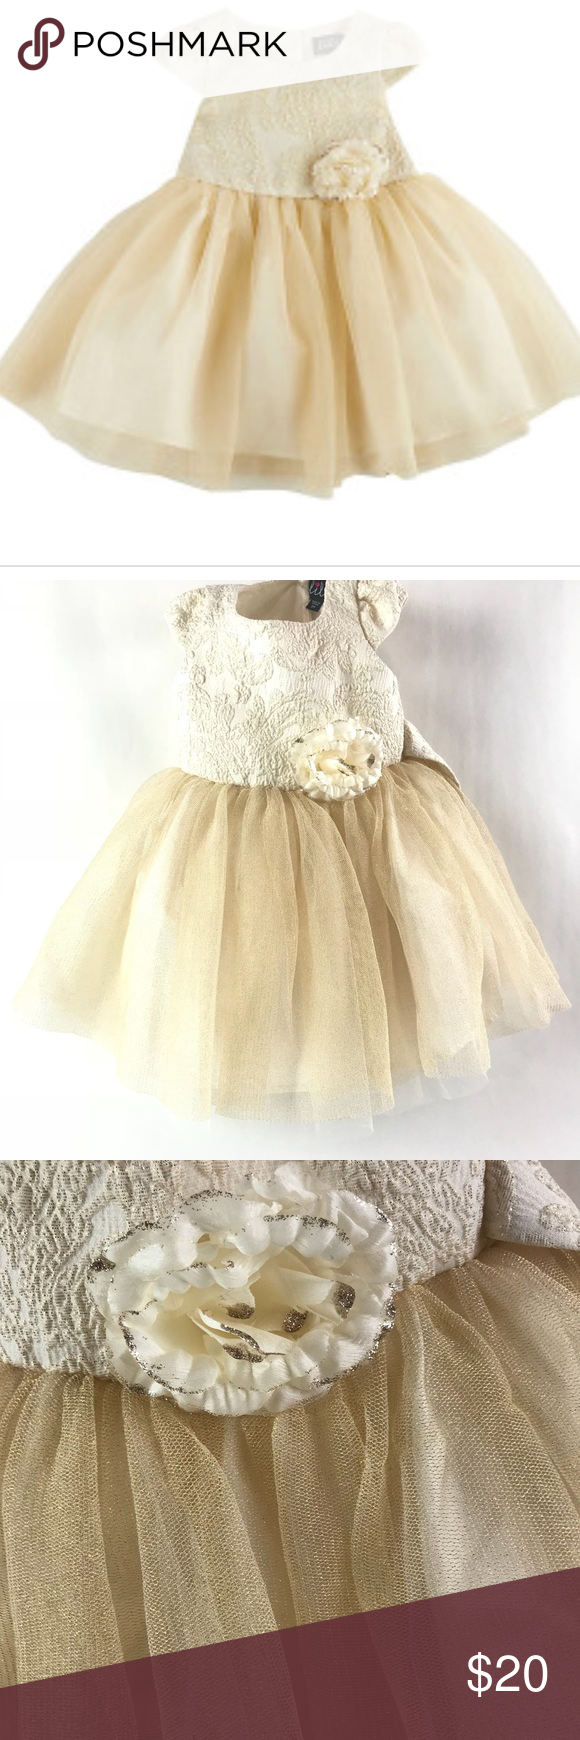 Lilt Gold And Off White 2t Dress Lilt Gold And Off White 2t Dress Measurements Chest 21 Length 17 Beautiful Dress Dresses 2t Dress Dress Measurements [ 1740 x 580 Pixel ]